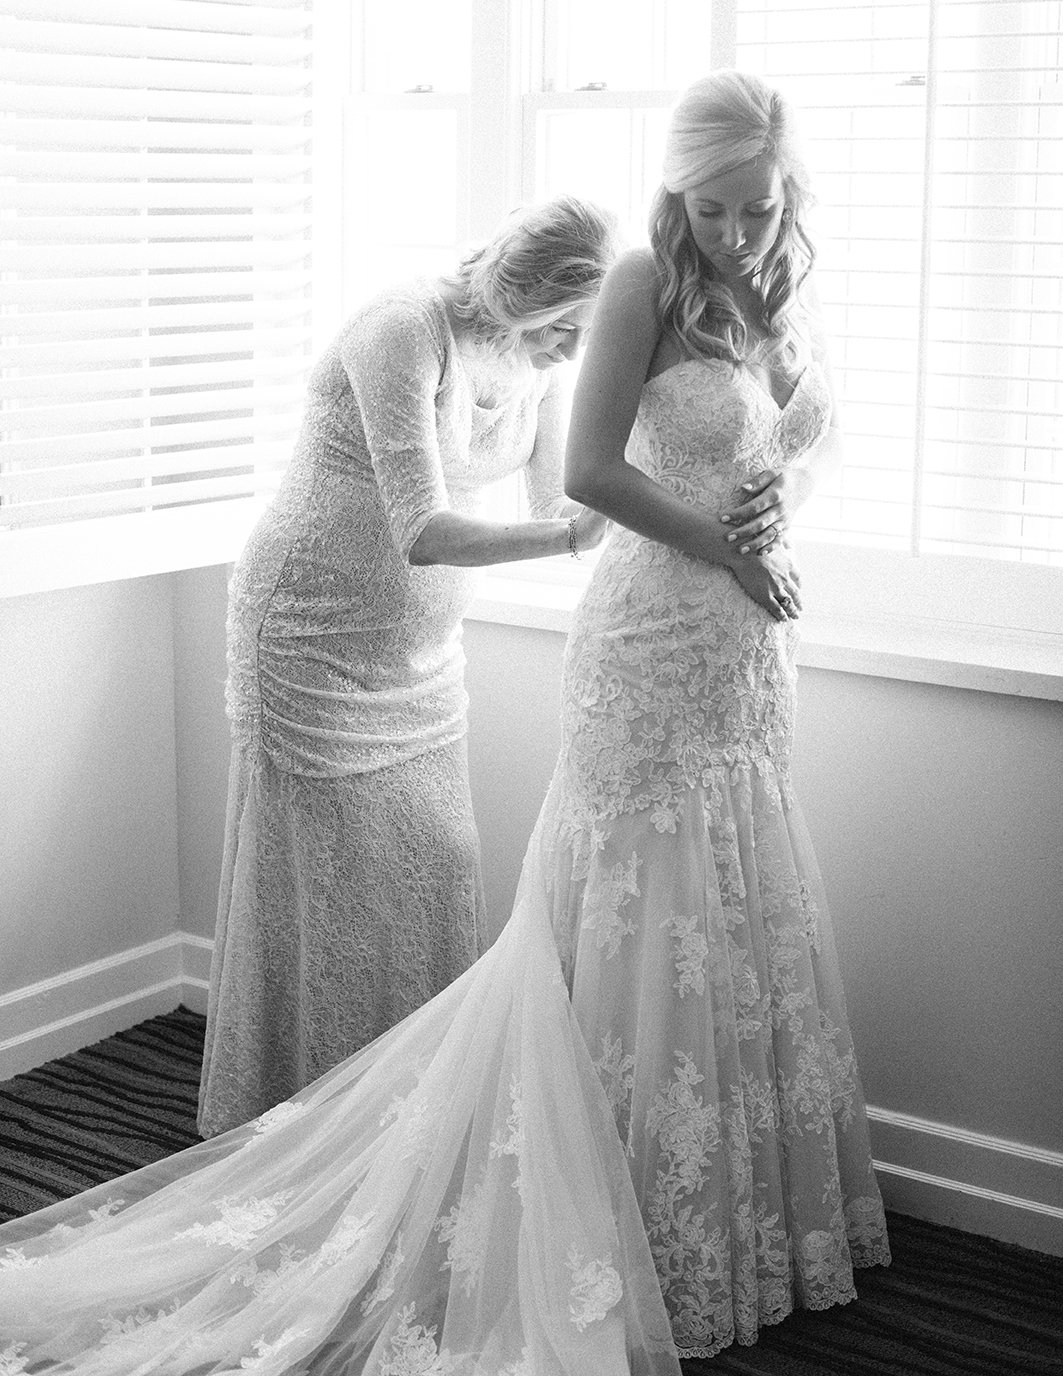 hotel wedding, getting ready, wedding gown, bride, lace gown, houston bridal gallery